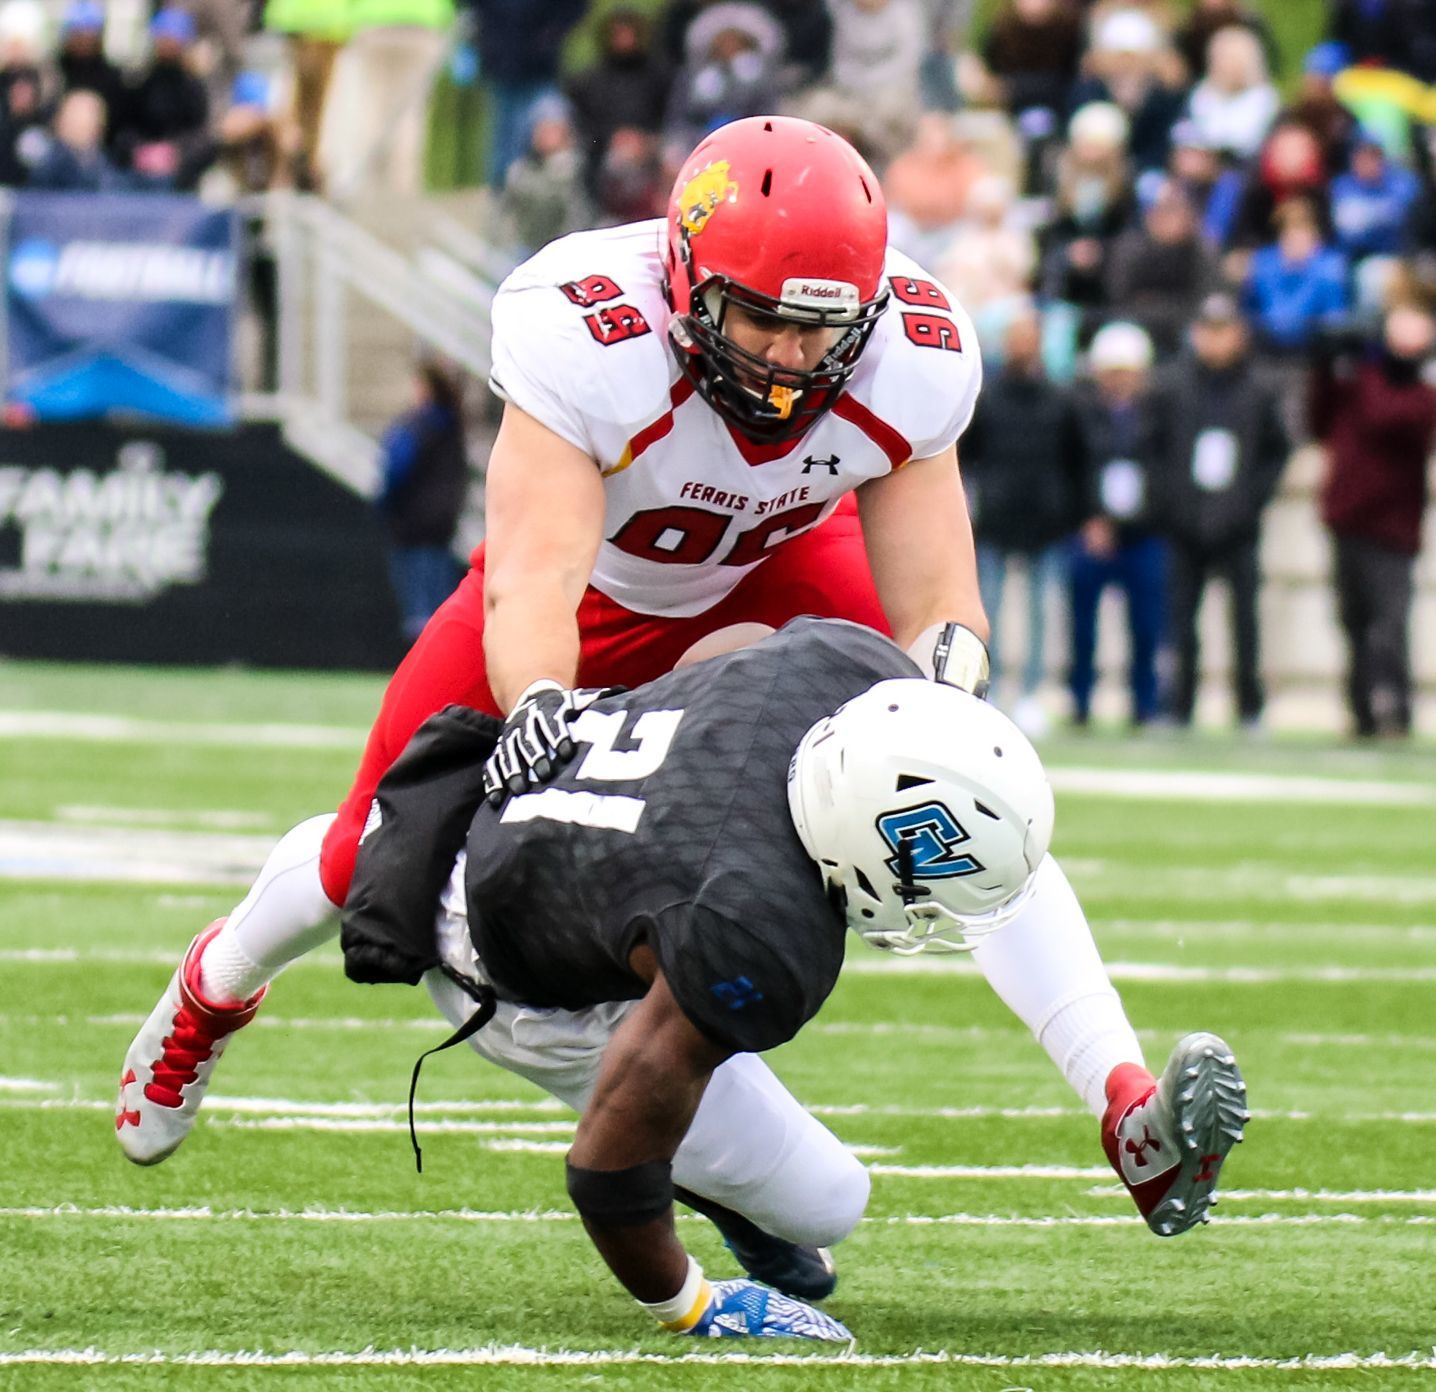 9. Ferris State at Grand Valley State. When: Oct. 13. Where: Allendale. The buzz: Known as the Anchor-Bone Classic, this is one of the most heated rivalries in the state. Last season, Ferris State scored a late touchdown to win, 28-27.